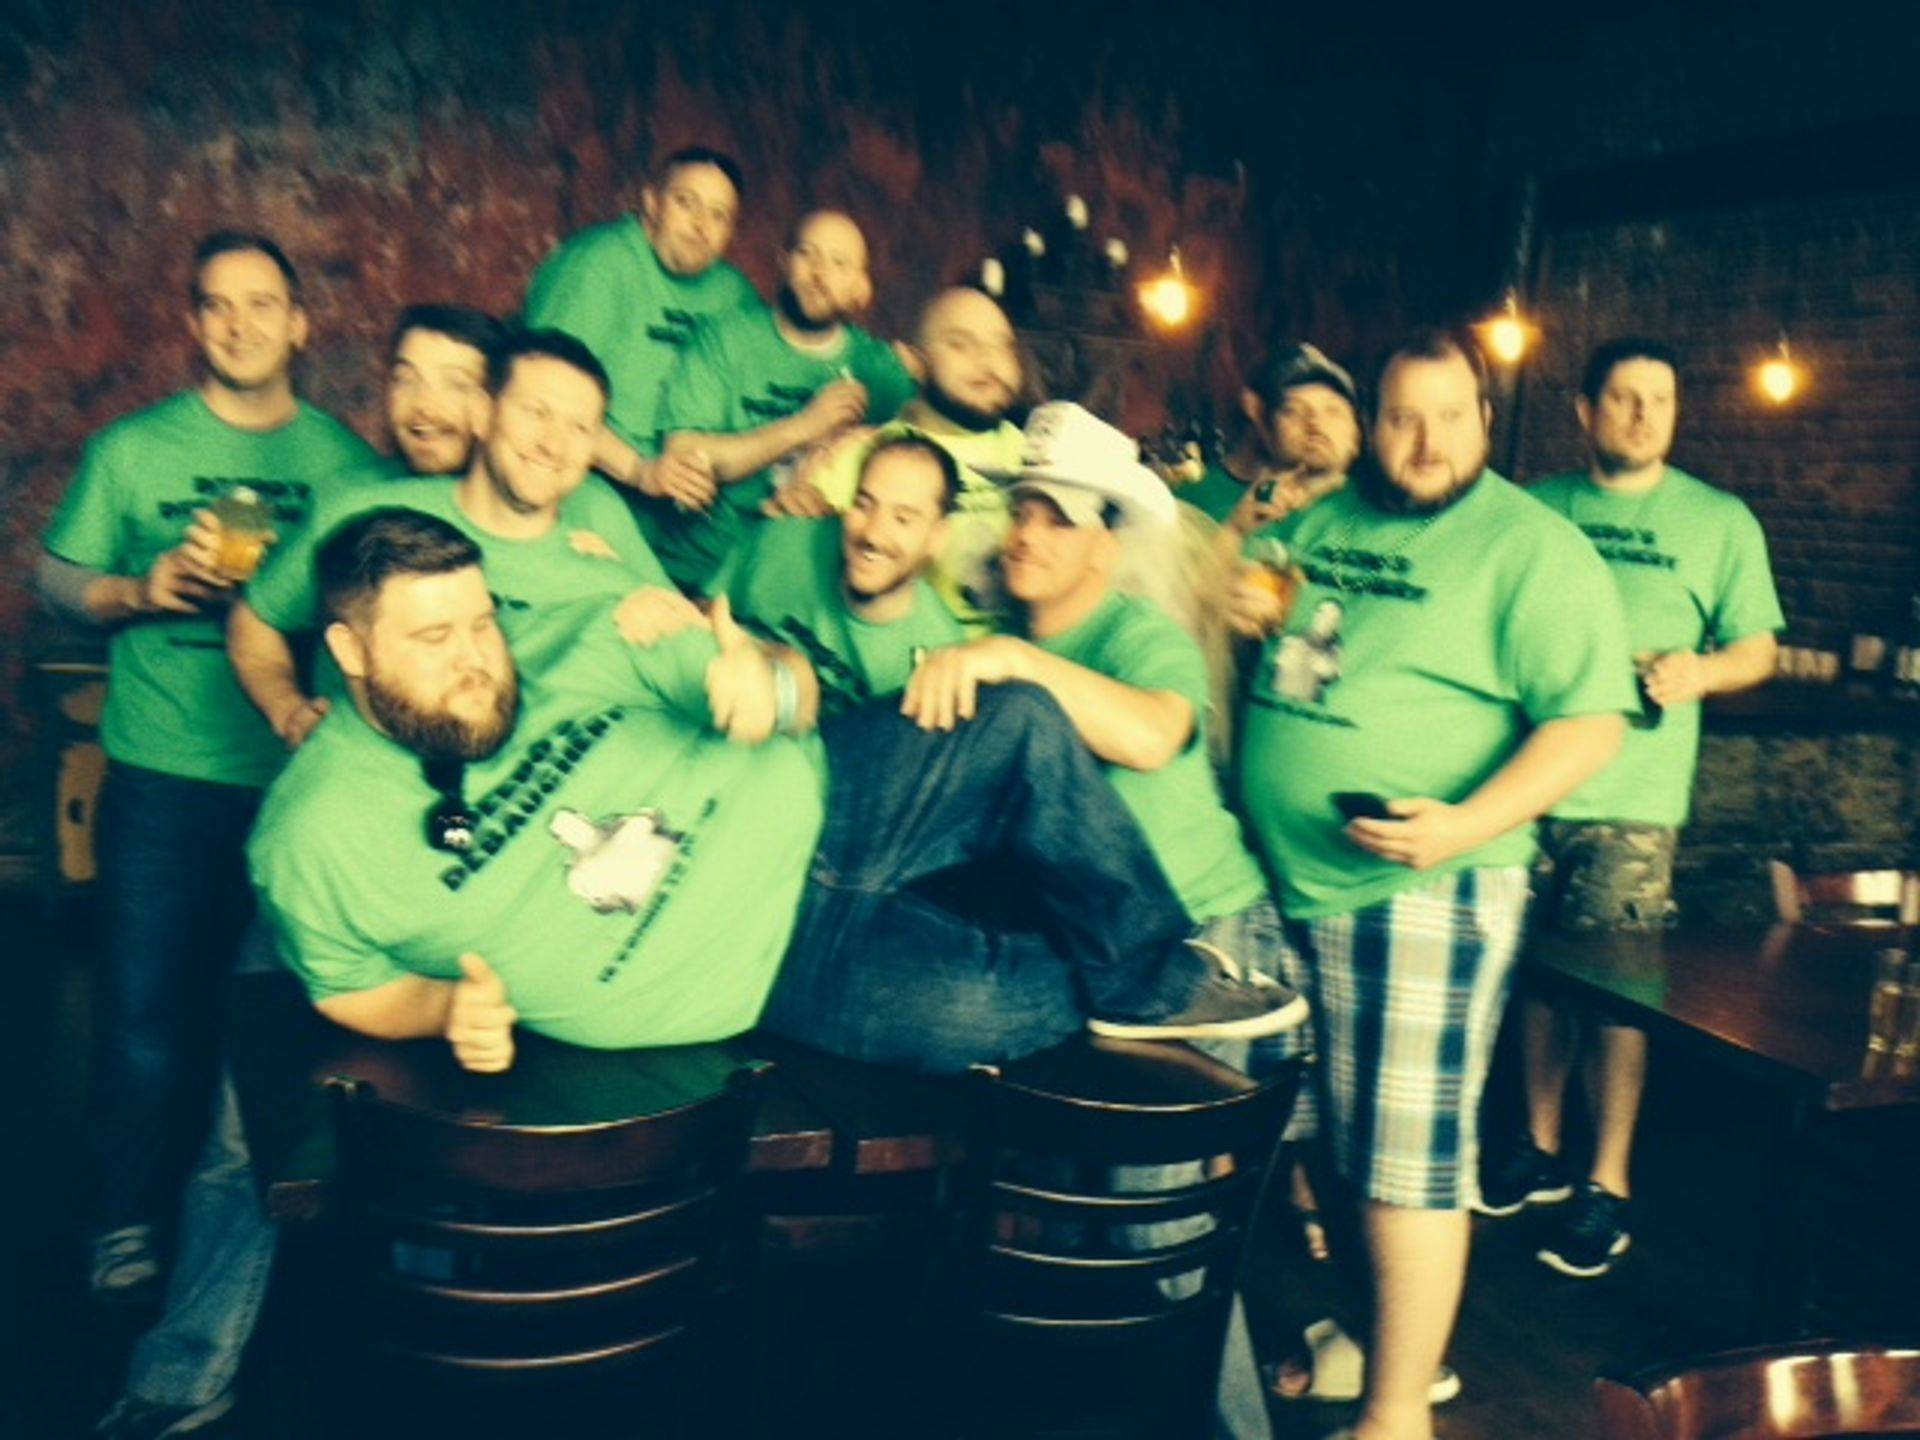 Matt spent his Nashville bachelor party on the Music City Pub Crawl